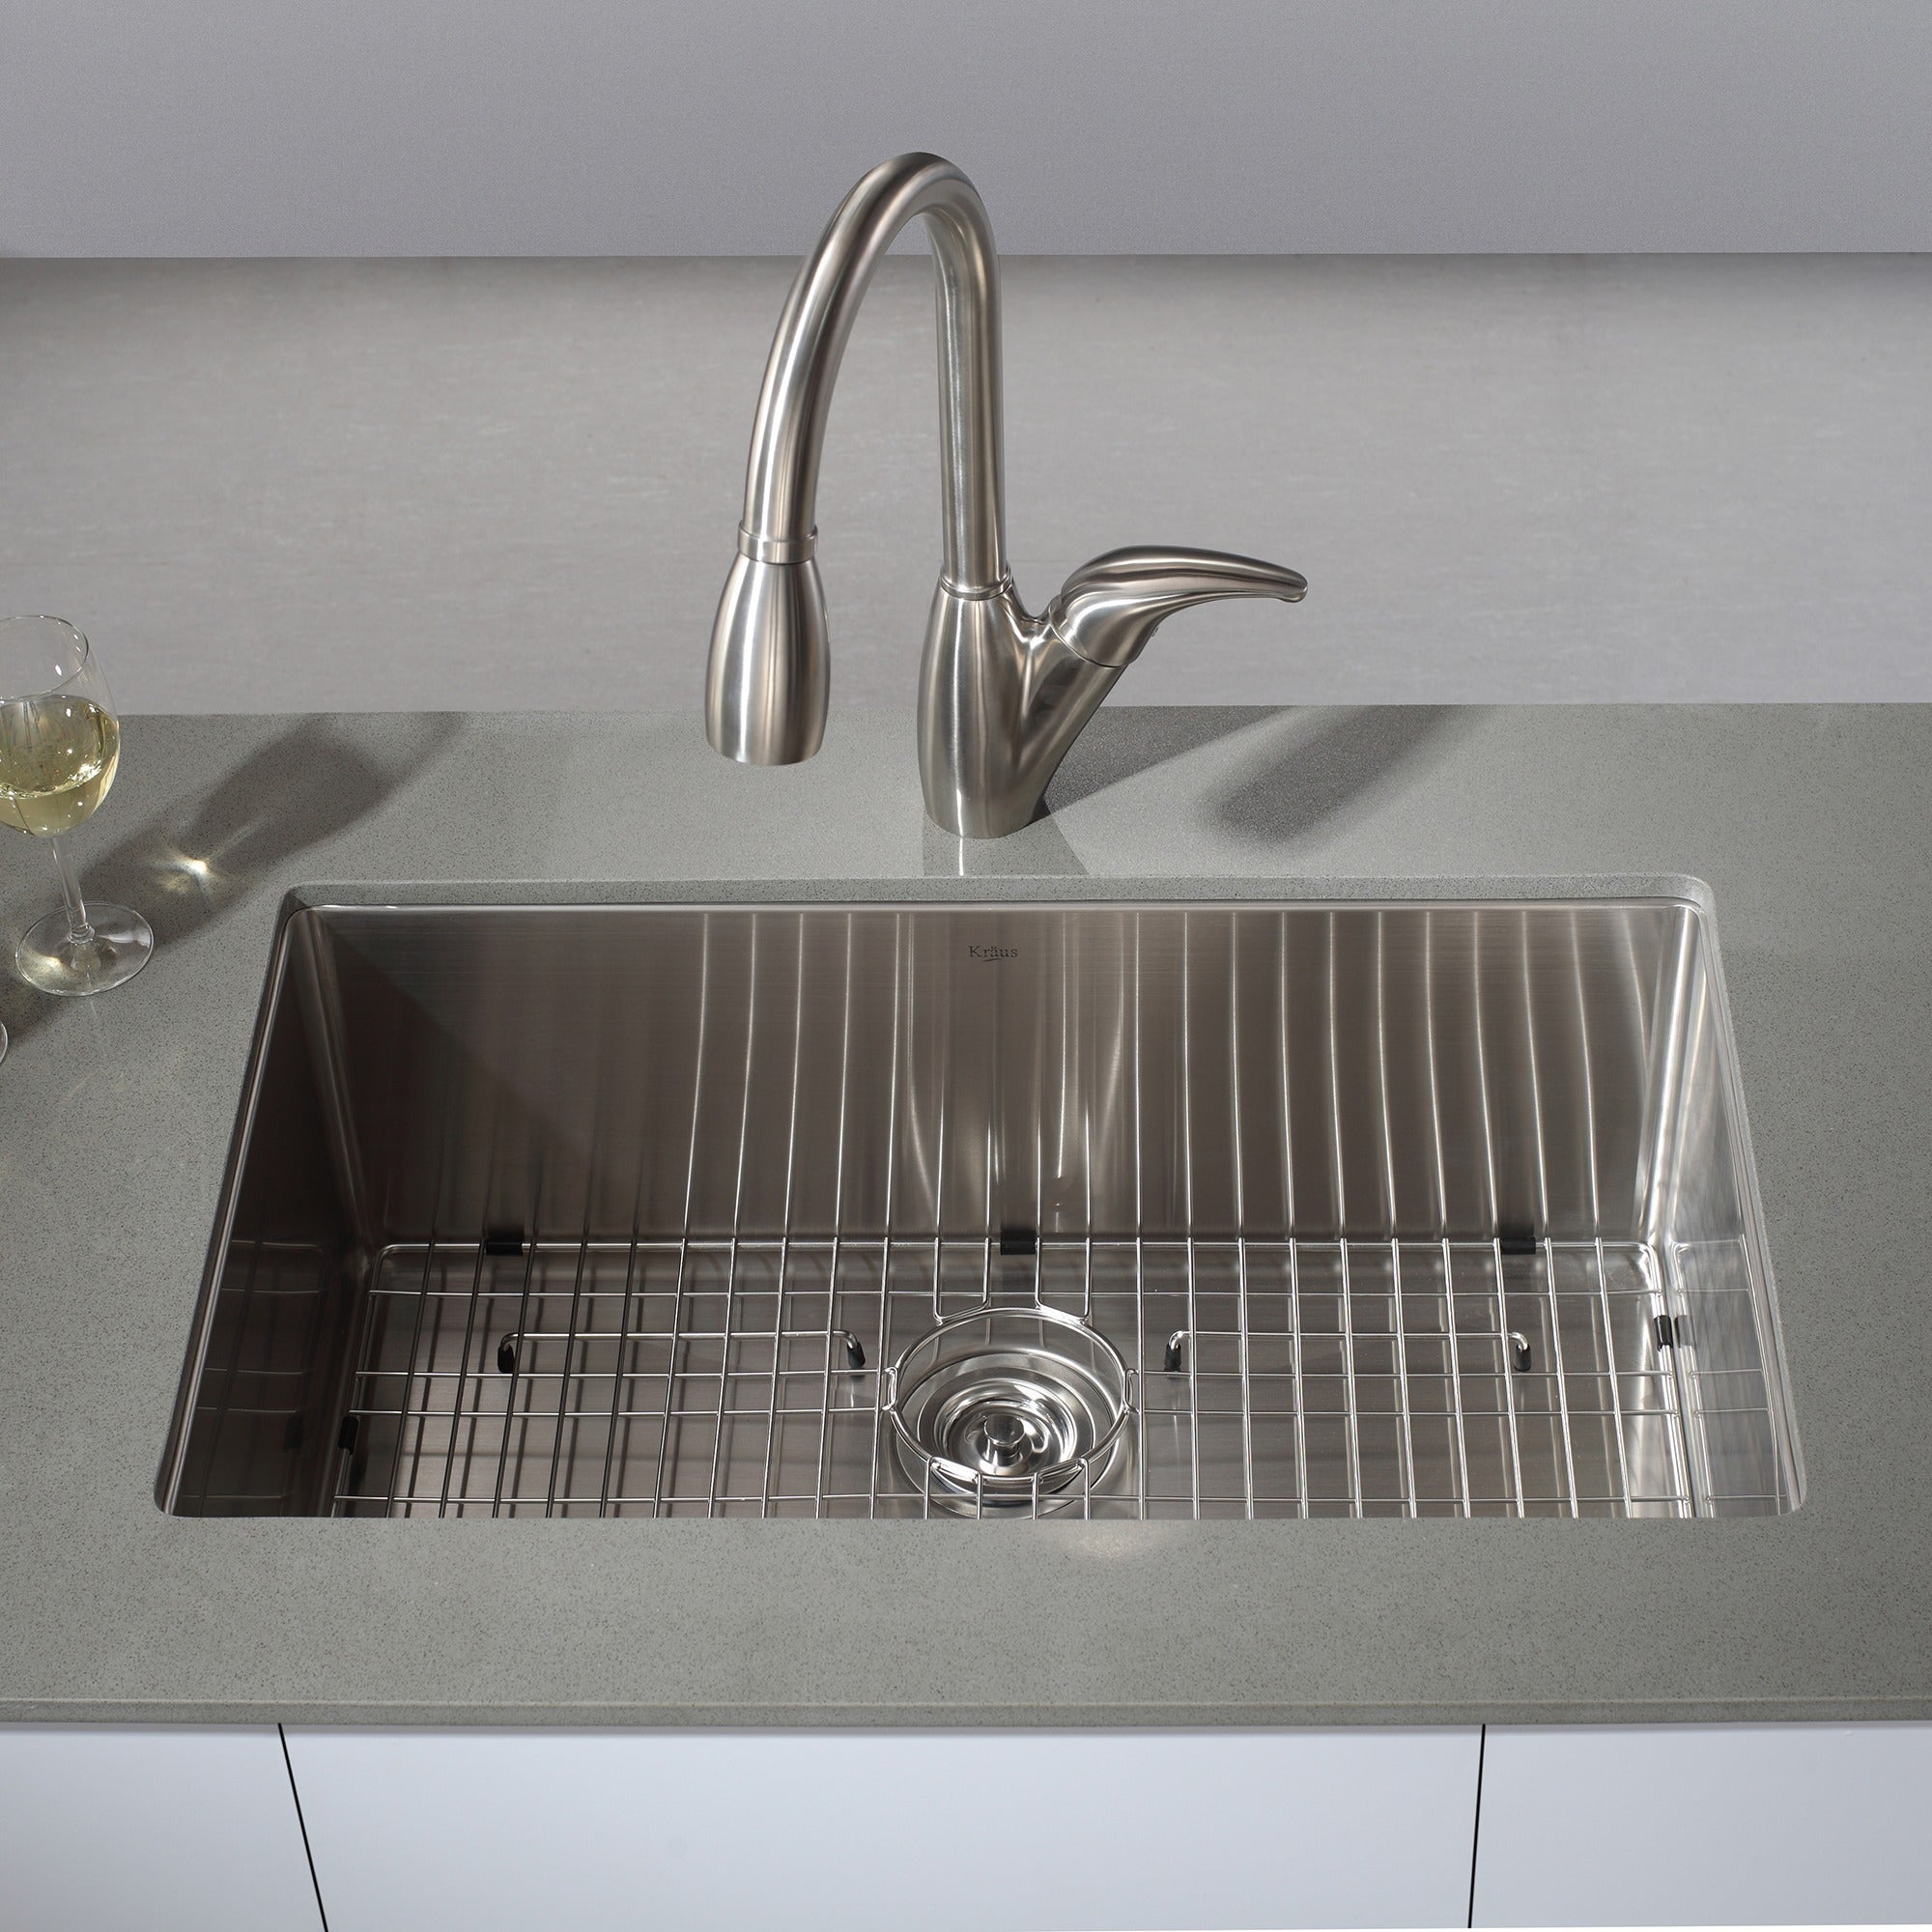 kraus 32 inch undermount single bowl 16 gauge stainless steel kitchen sink with noisedefend soundproofing   free shipping today   overstock com   11477728 kraus 32 inch undermount single bowl 16 gauge stainless steel      rh   overstock com